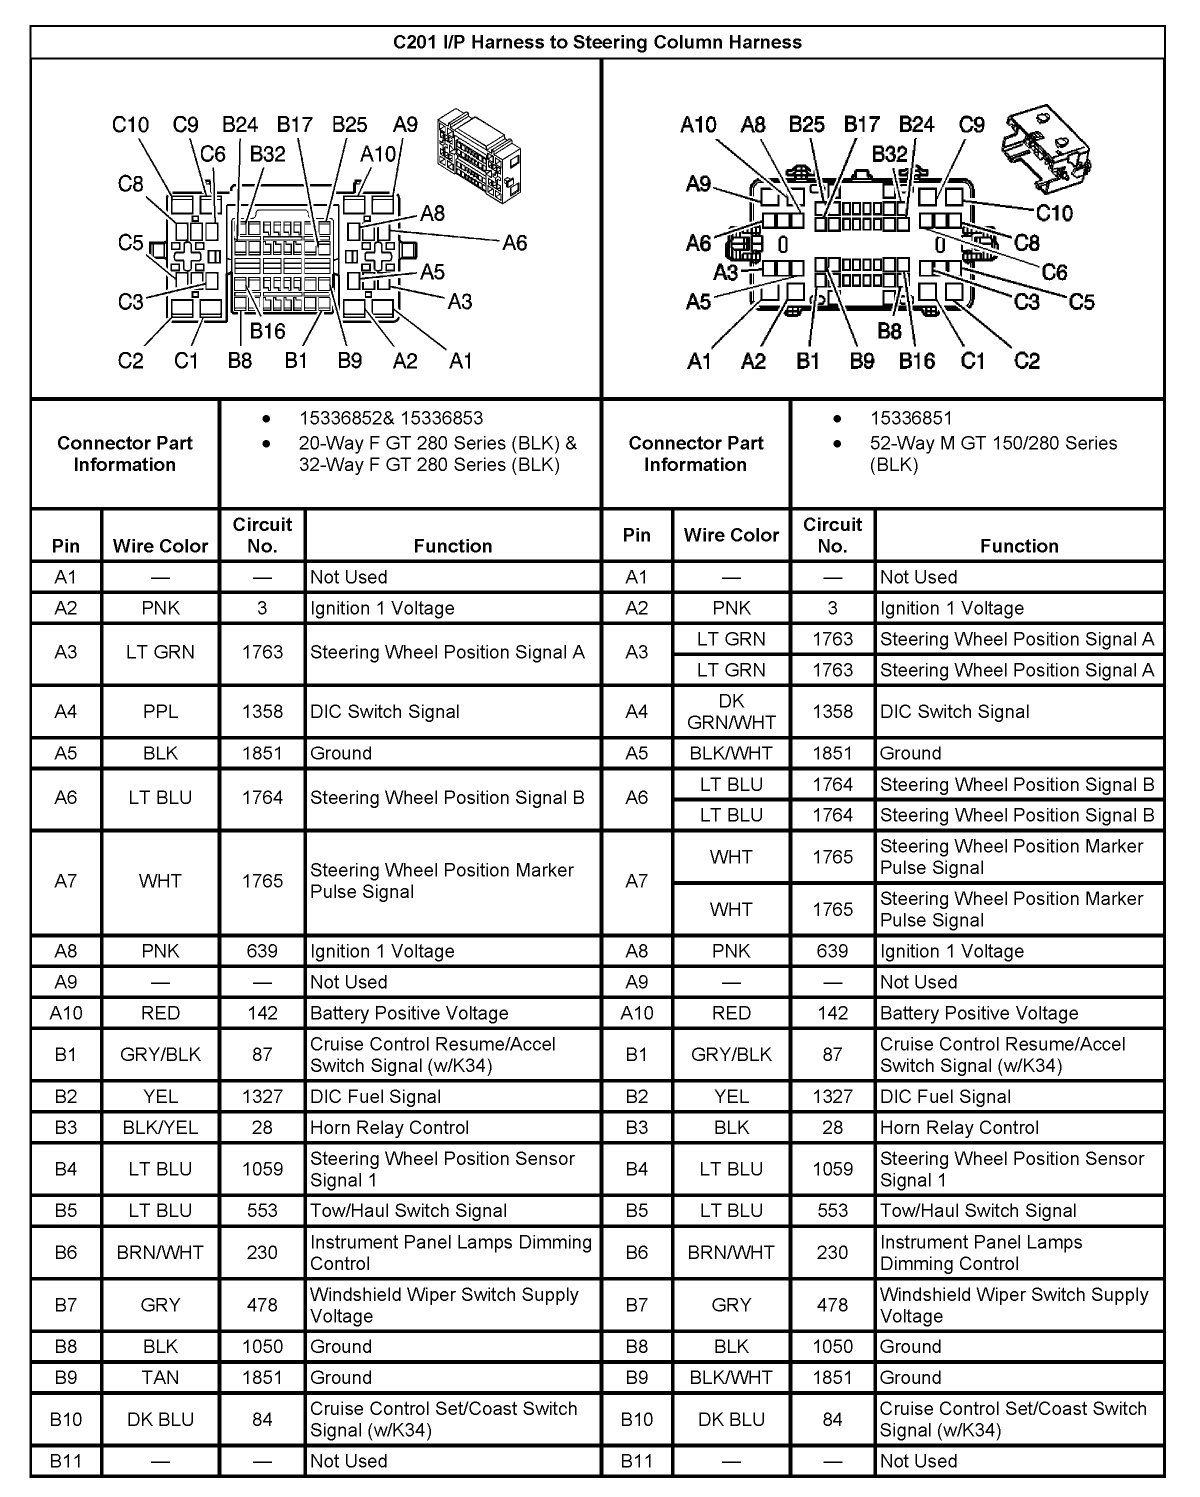 wiring diagram for 2000 gmc sierra 1500 radio wiring diagram for 06 gmc sierra 2004 gmc sierra radio wiring diagram | free wiring diagram